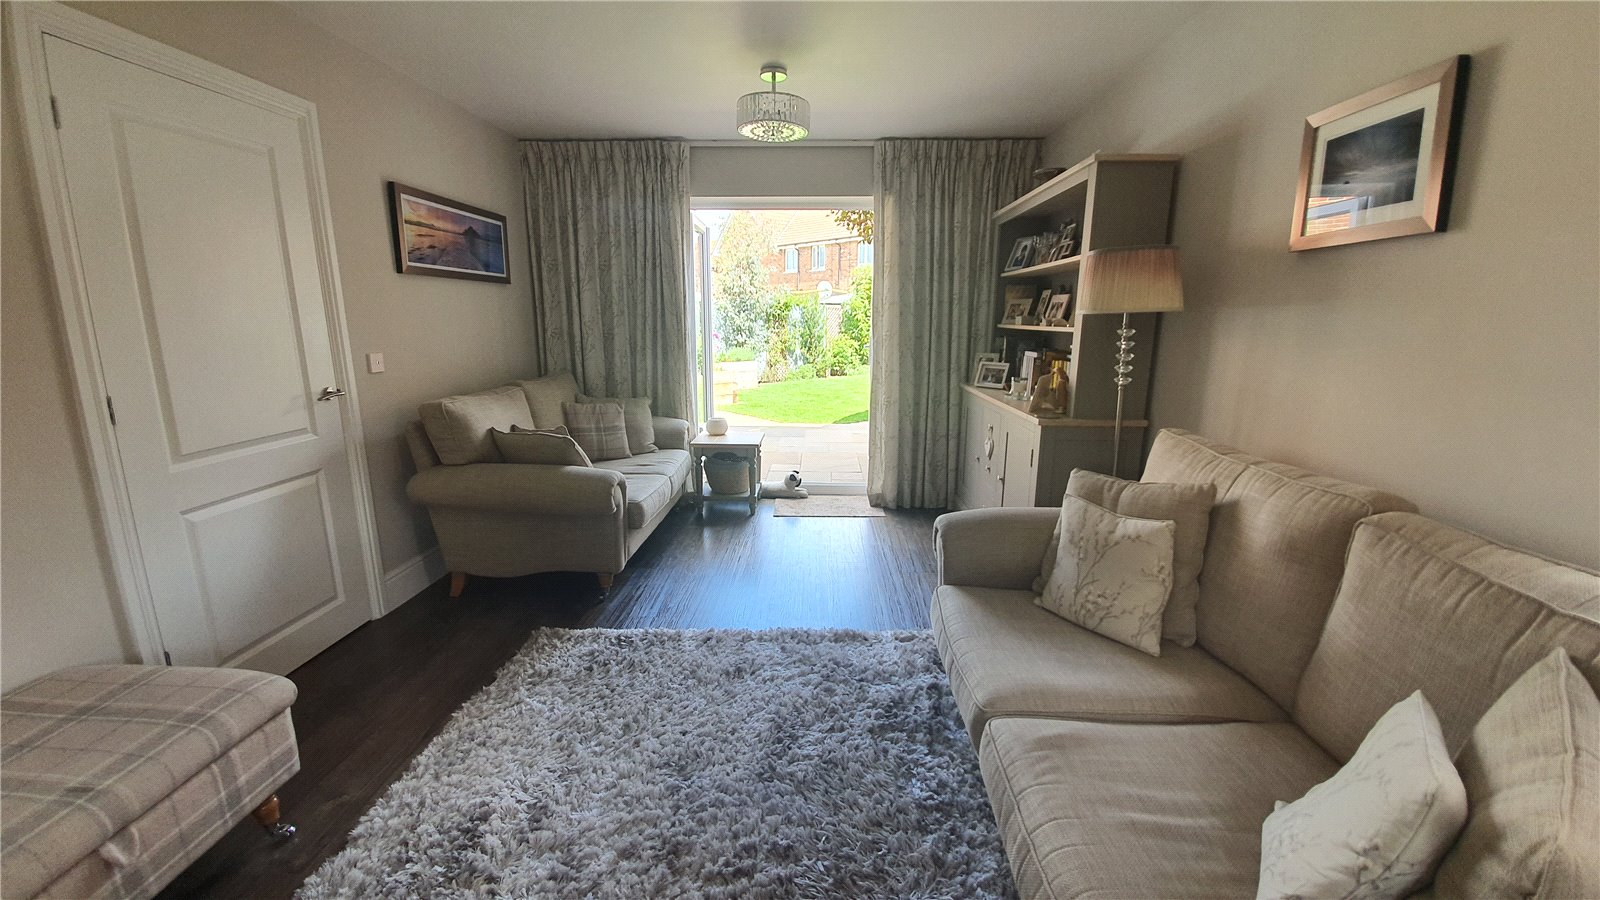 3 bed house for sale in Harvest Drive, St Neots  - Property Image 5